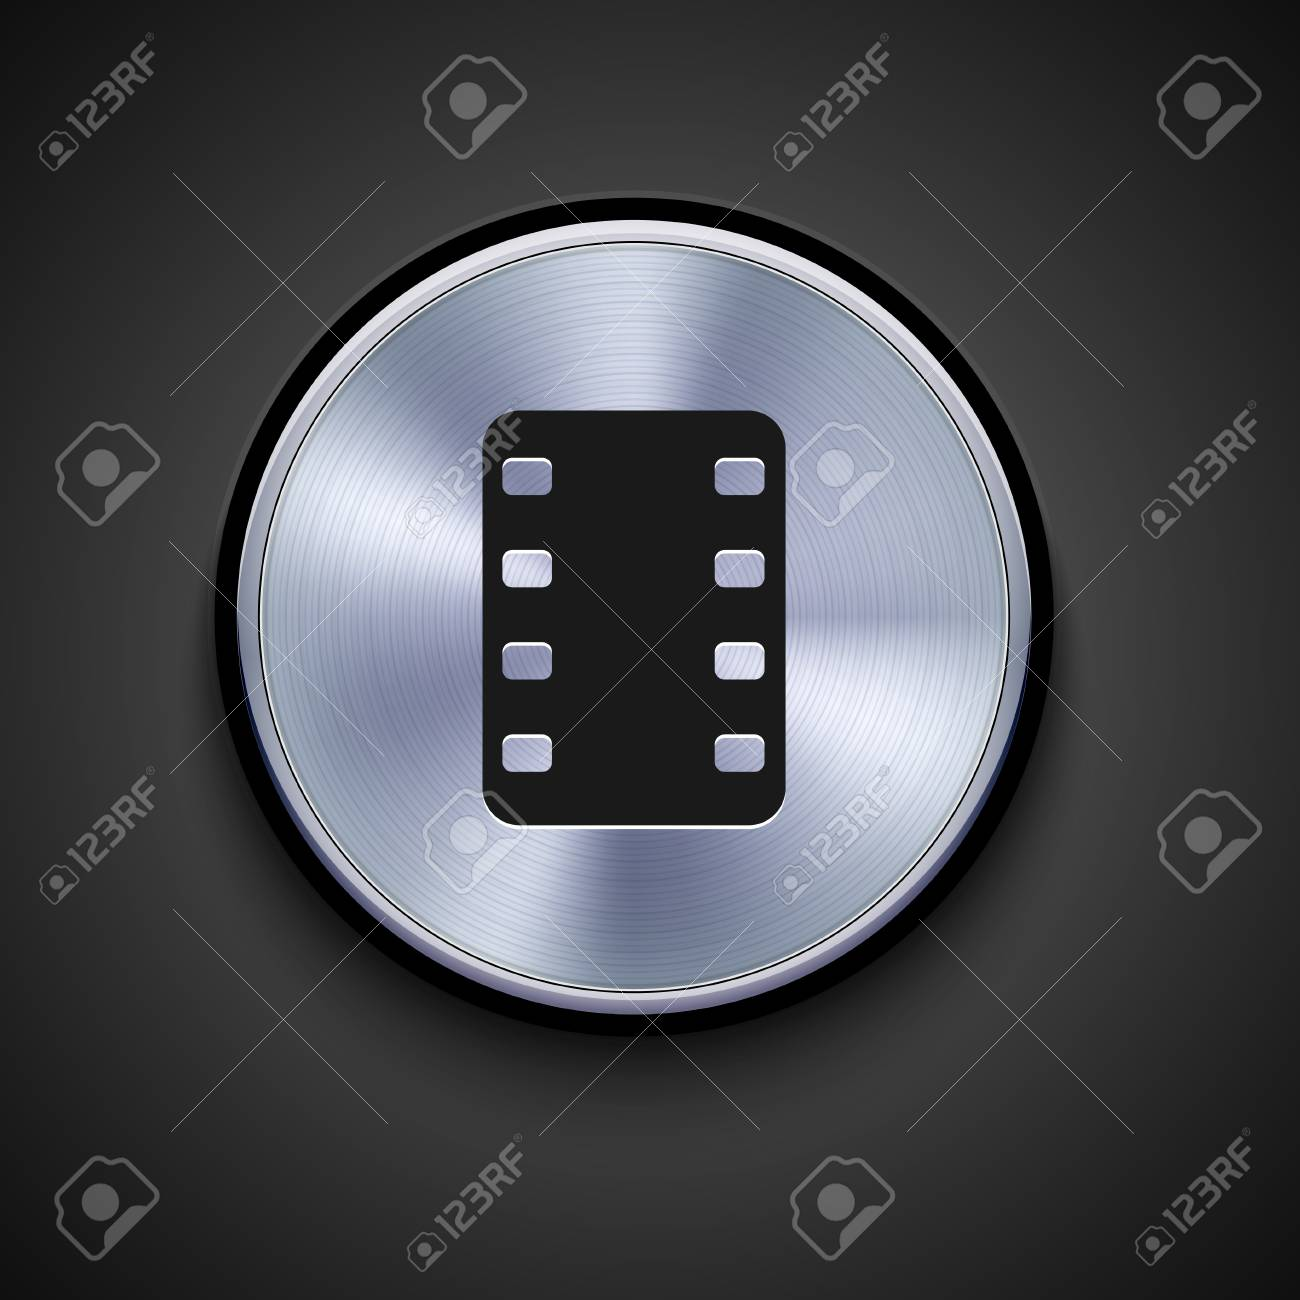 vector metal icon on gray background. Eps10 Stock Vector - 17275247